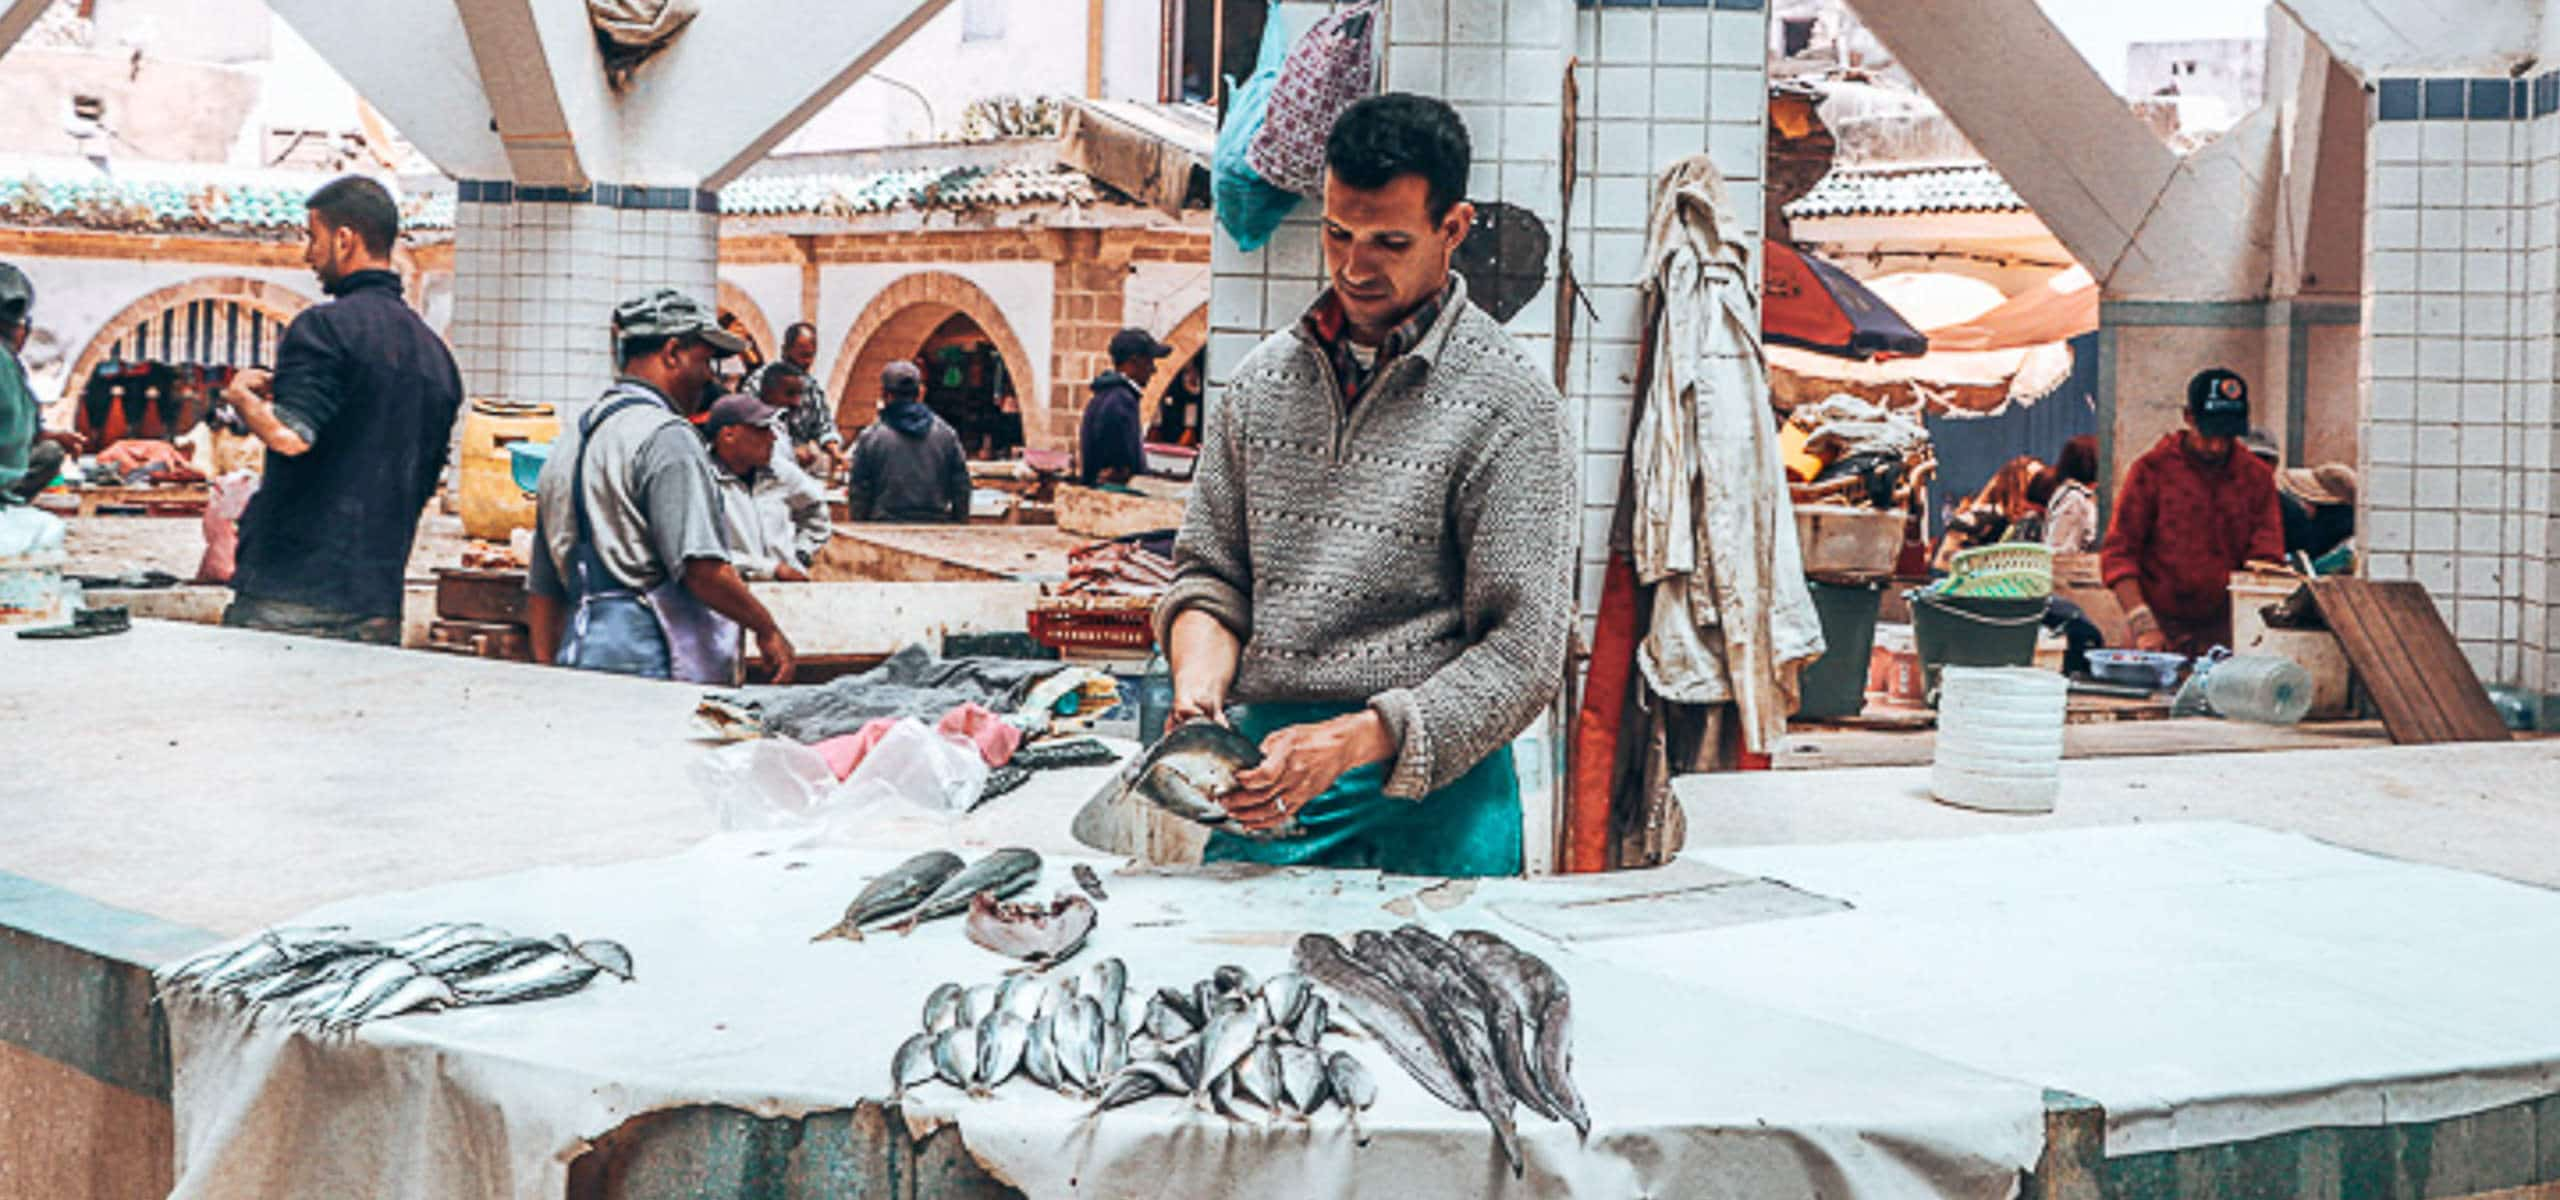 A man cleans fish at the Marche aux Poissons in Essaouira, Morocco